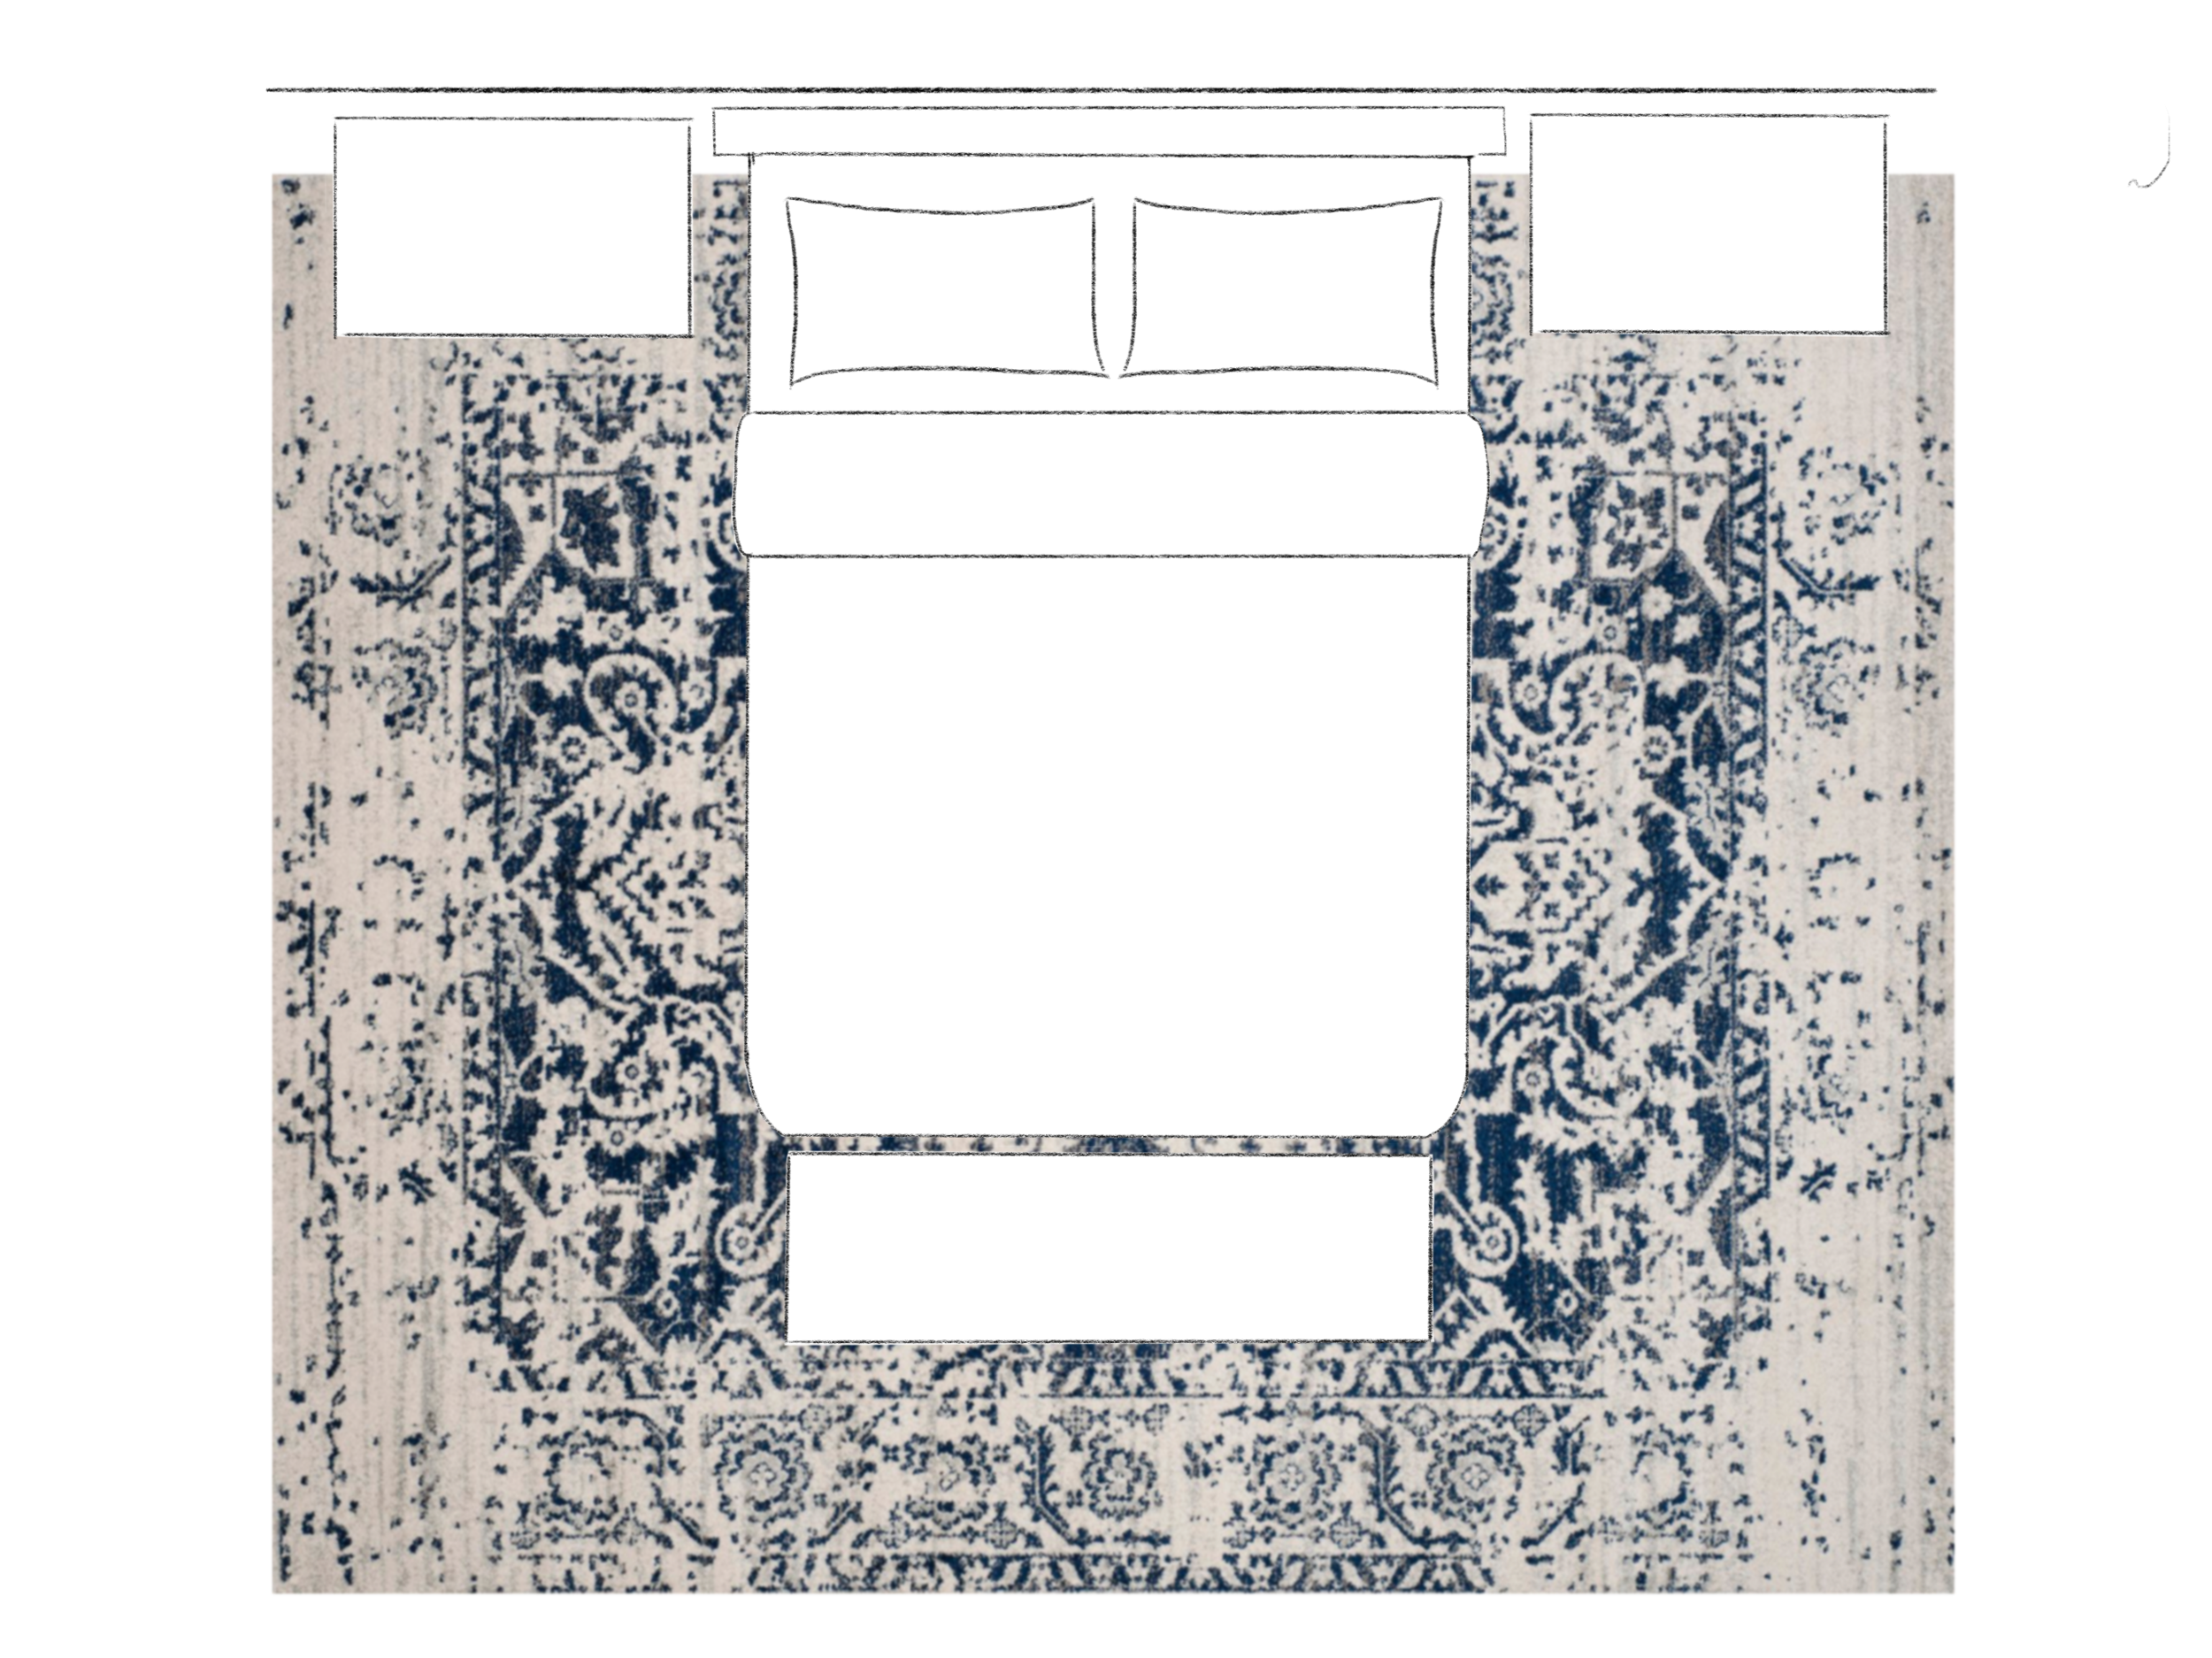 How to Choose the Right Size Area Rug - All Legs On Bedroom Layout. Asha-Maia Design | Interiors + Events, Alexandria, VA 22302